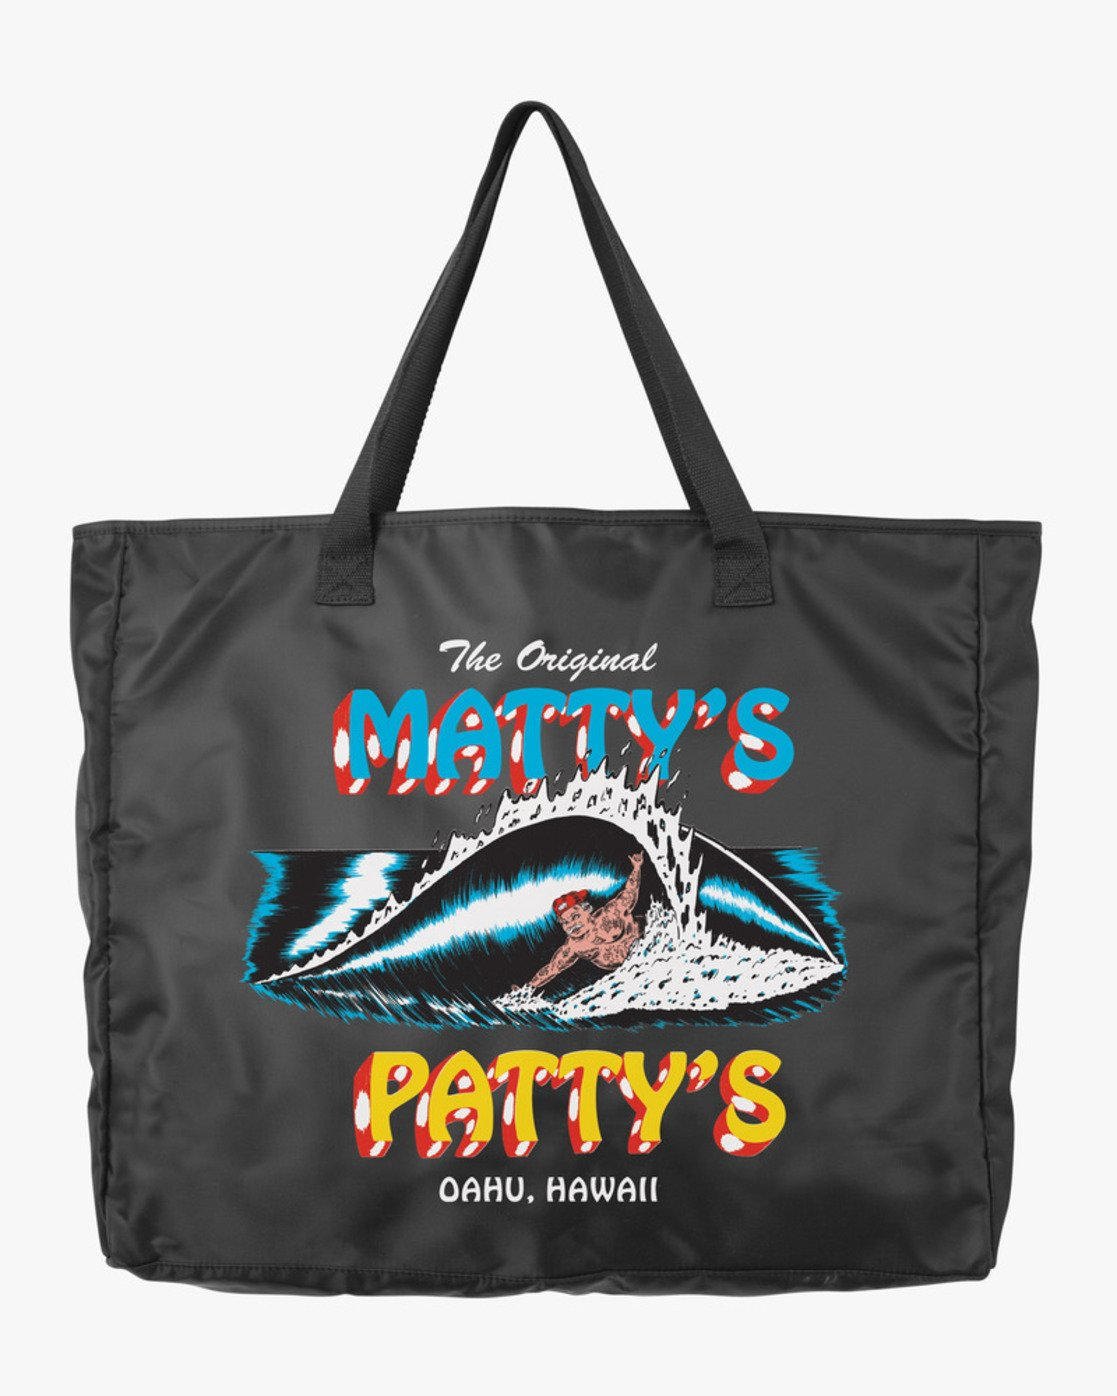 0 Matty's Patty's Tote Black R194471 RVCA